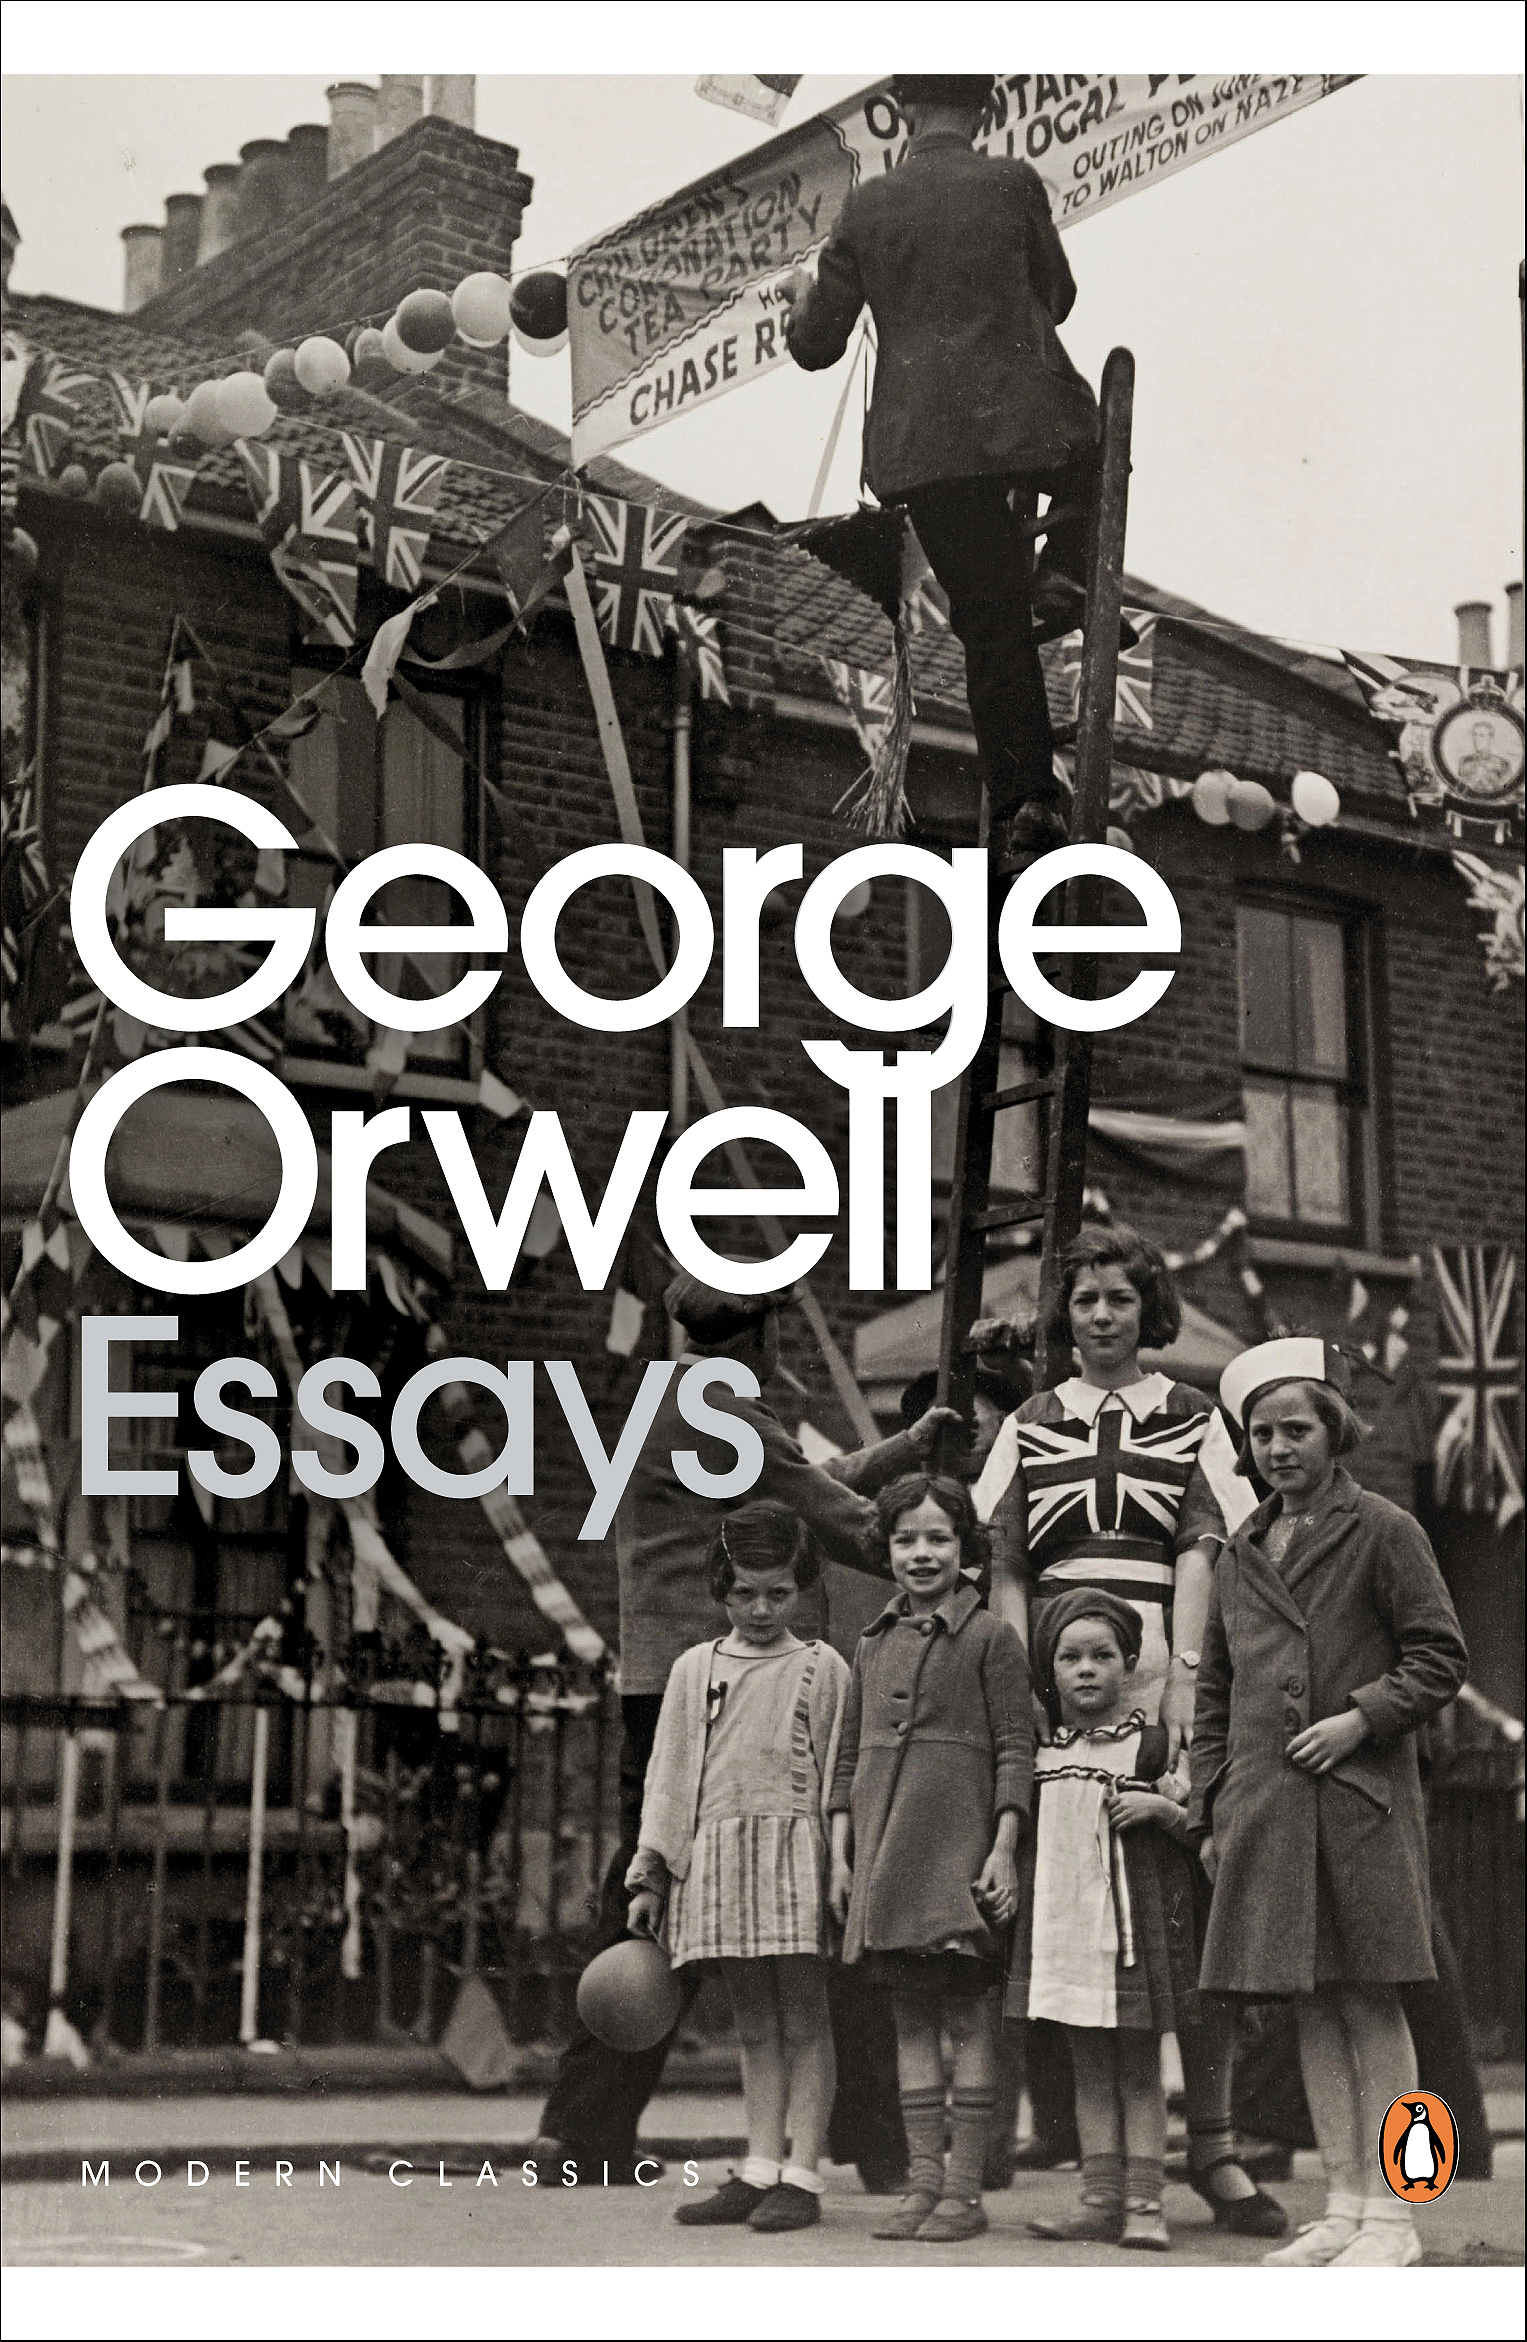 essay by george orwell 1984 george orwell essay sample in the book 1984 written by george orwell in 1948, the proles are presented as an impoverished, powerless and massive group of people.